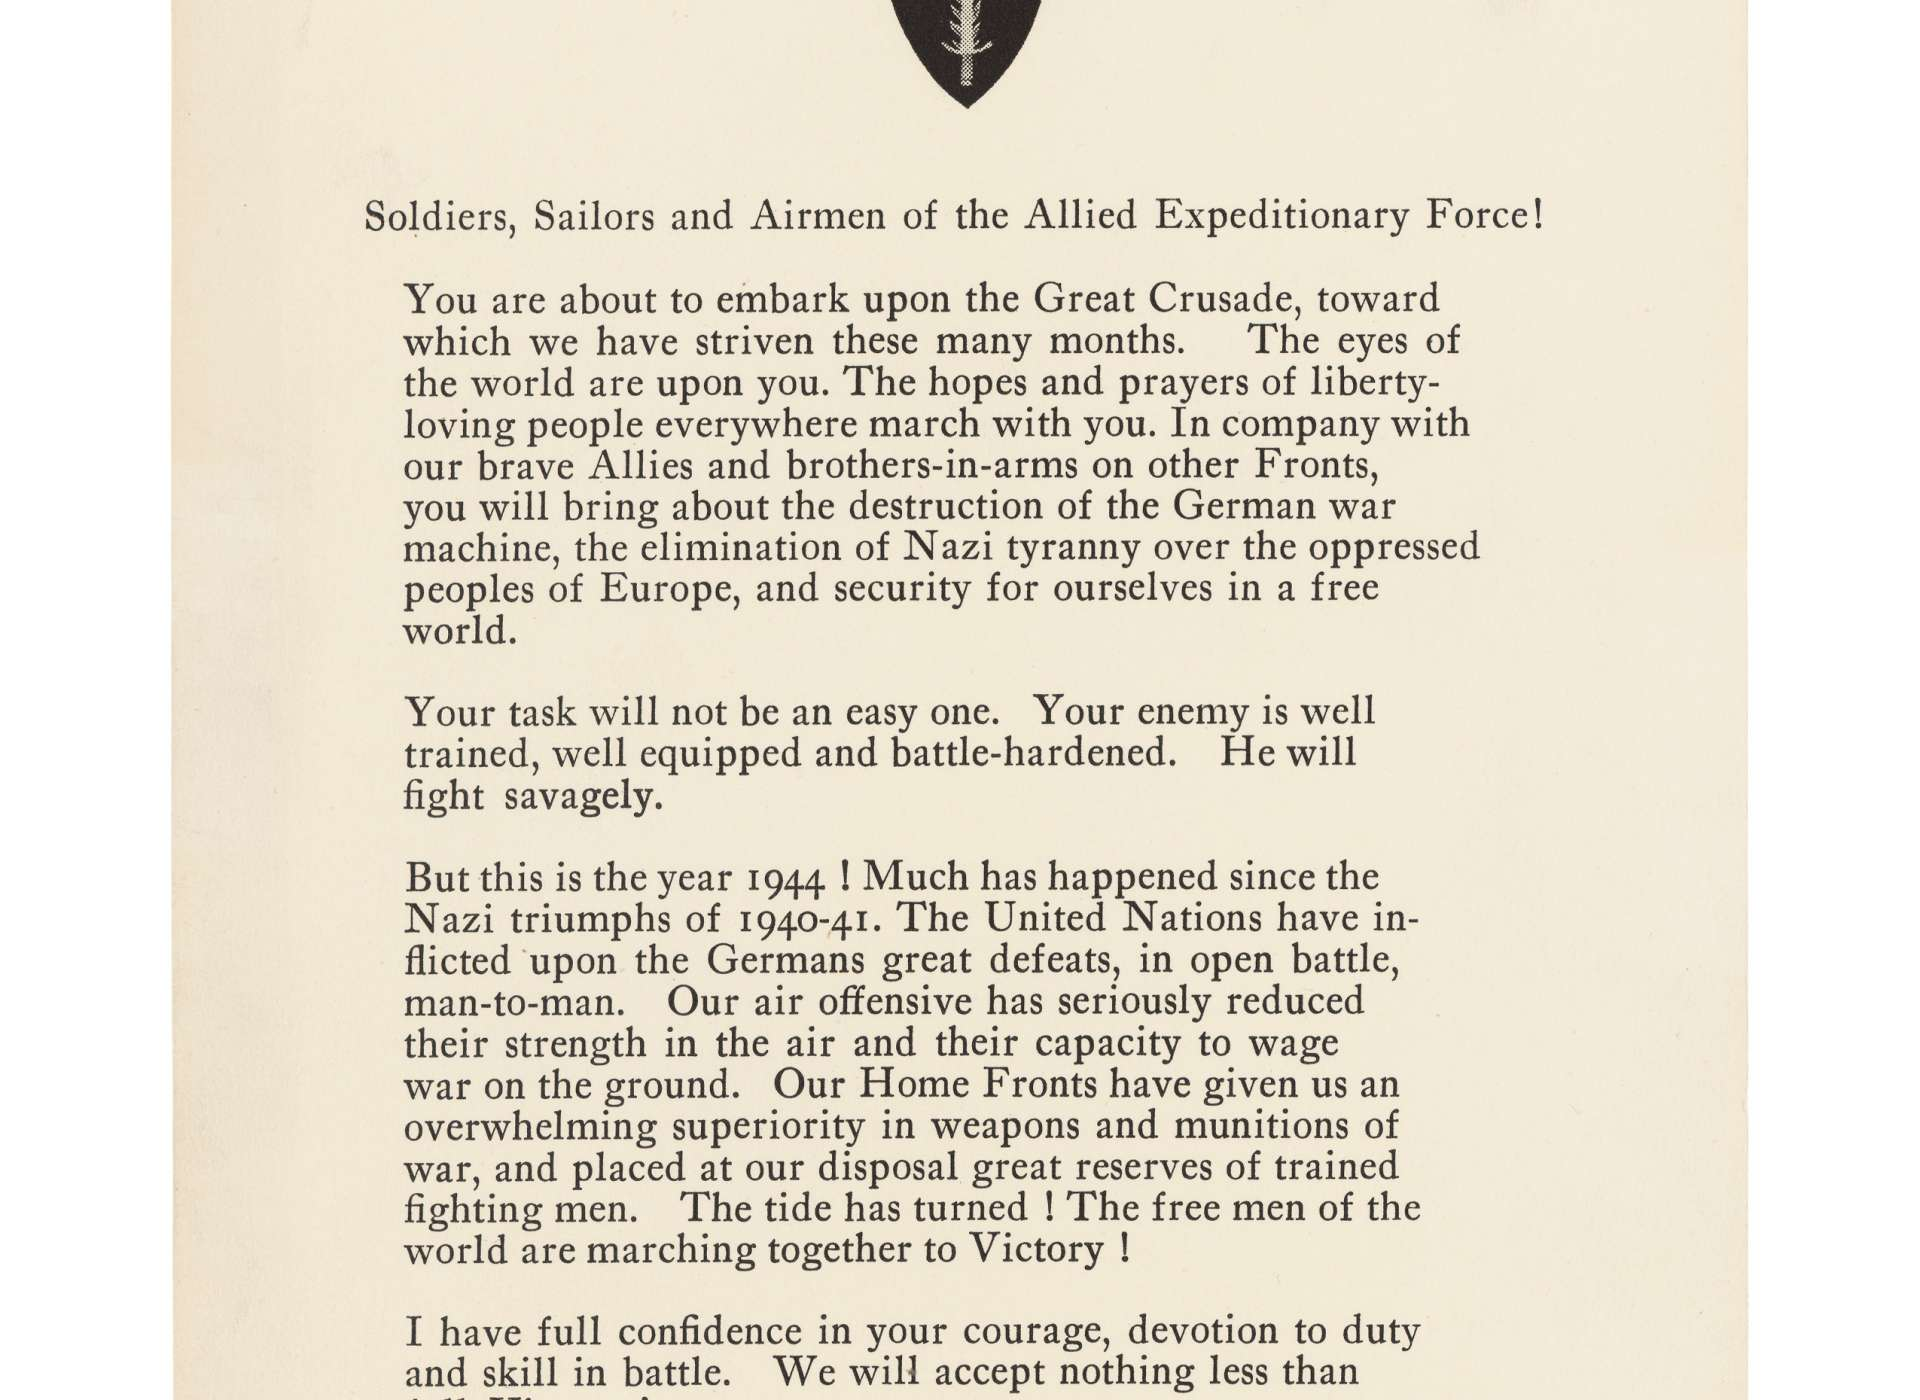 General Dwight Eisenhower's Order of the Day